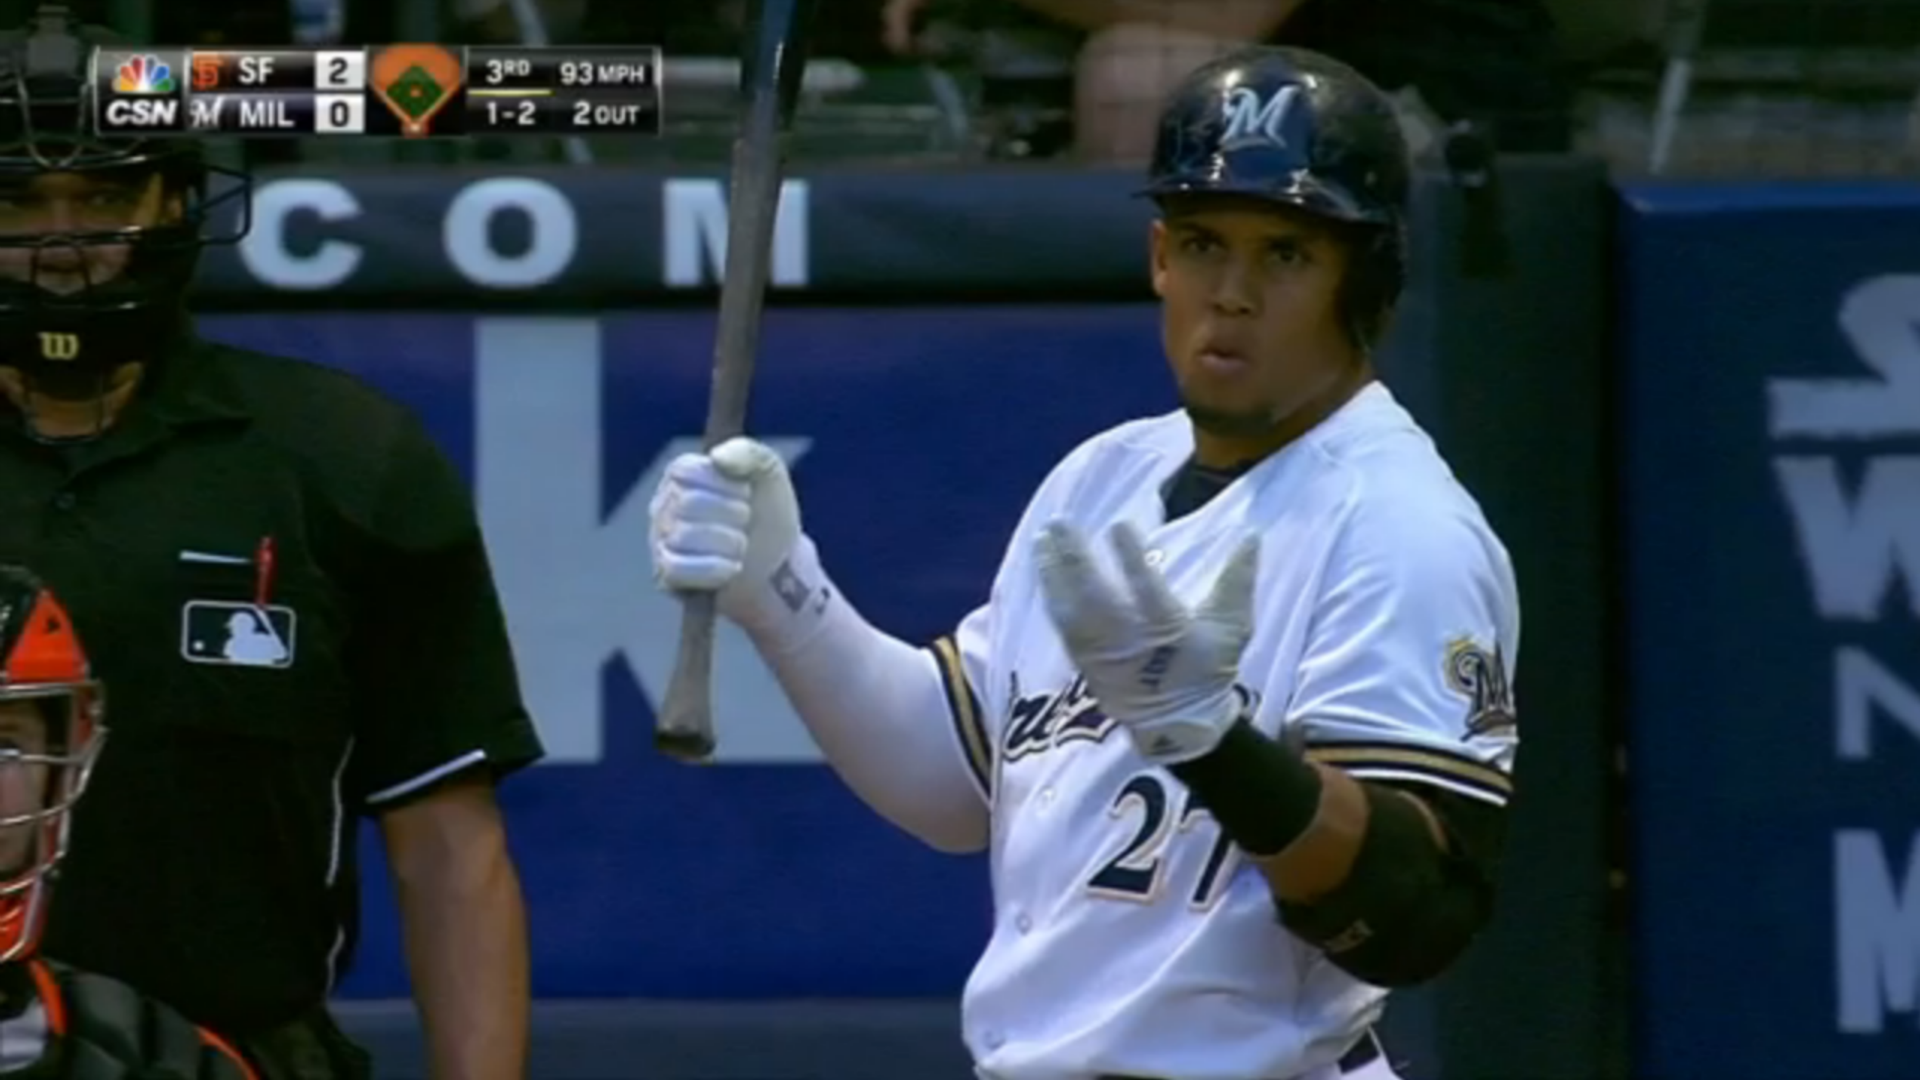 Carlos Gomez upset with Madison Bumgarner's glare: 'He's not my dad'